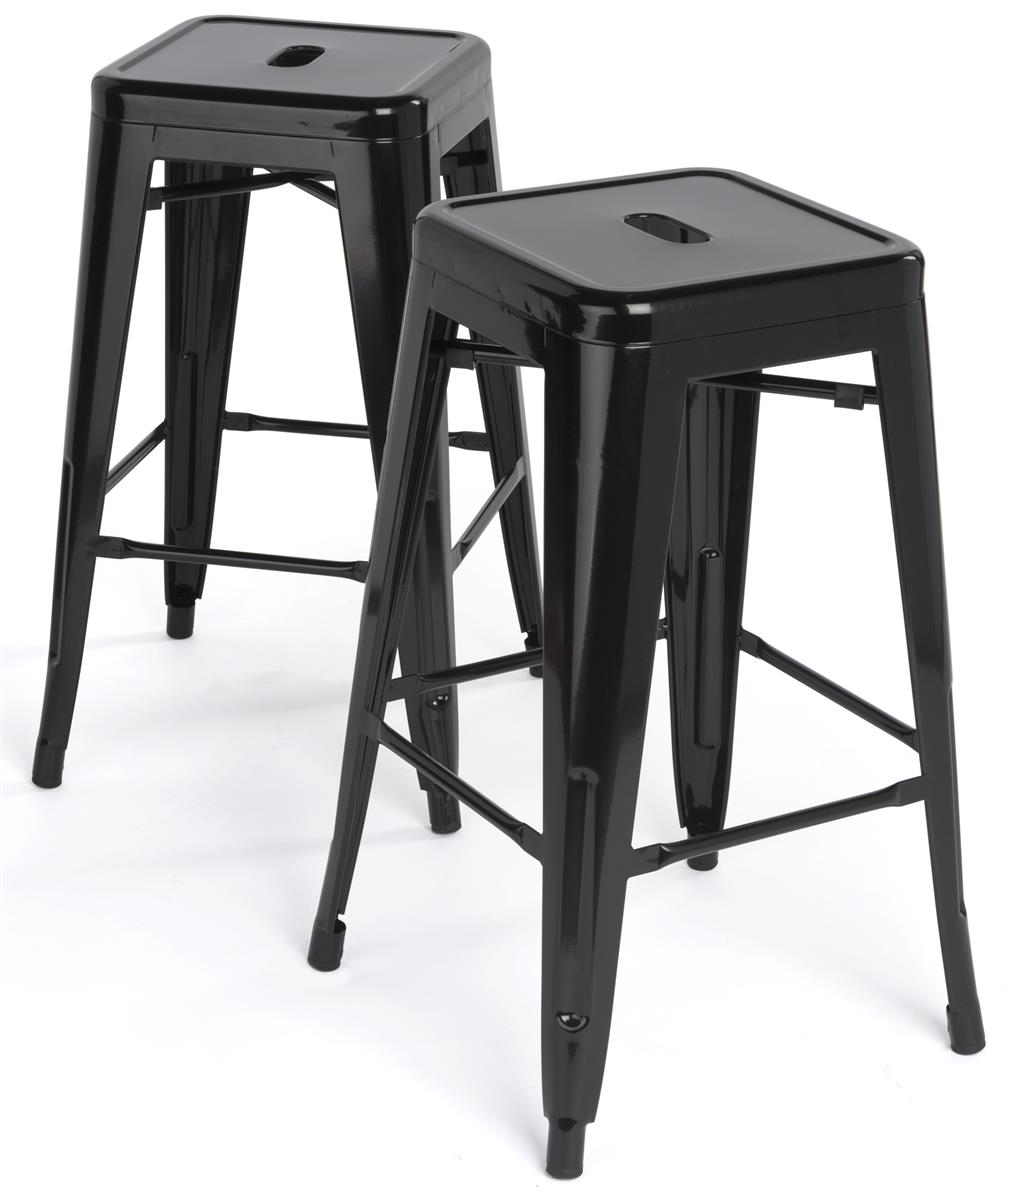 Excellent 26 Counter Height Stools Metal Stackable Set Of 2 Black Gmtry Best Dining Table And Chair Ideas Images Gmtryco